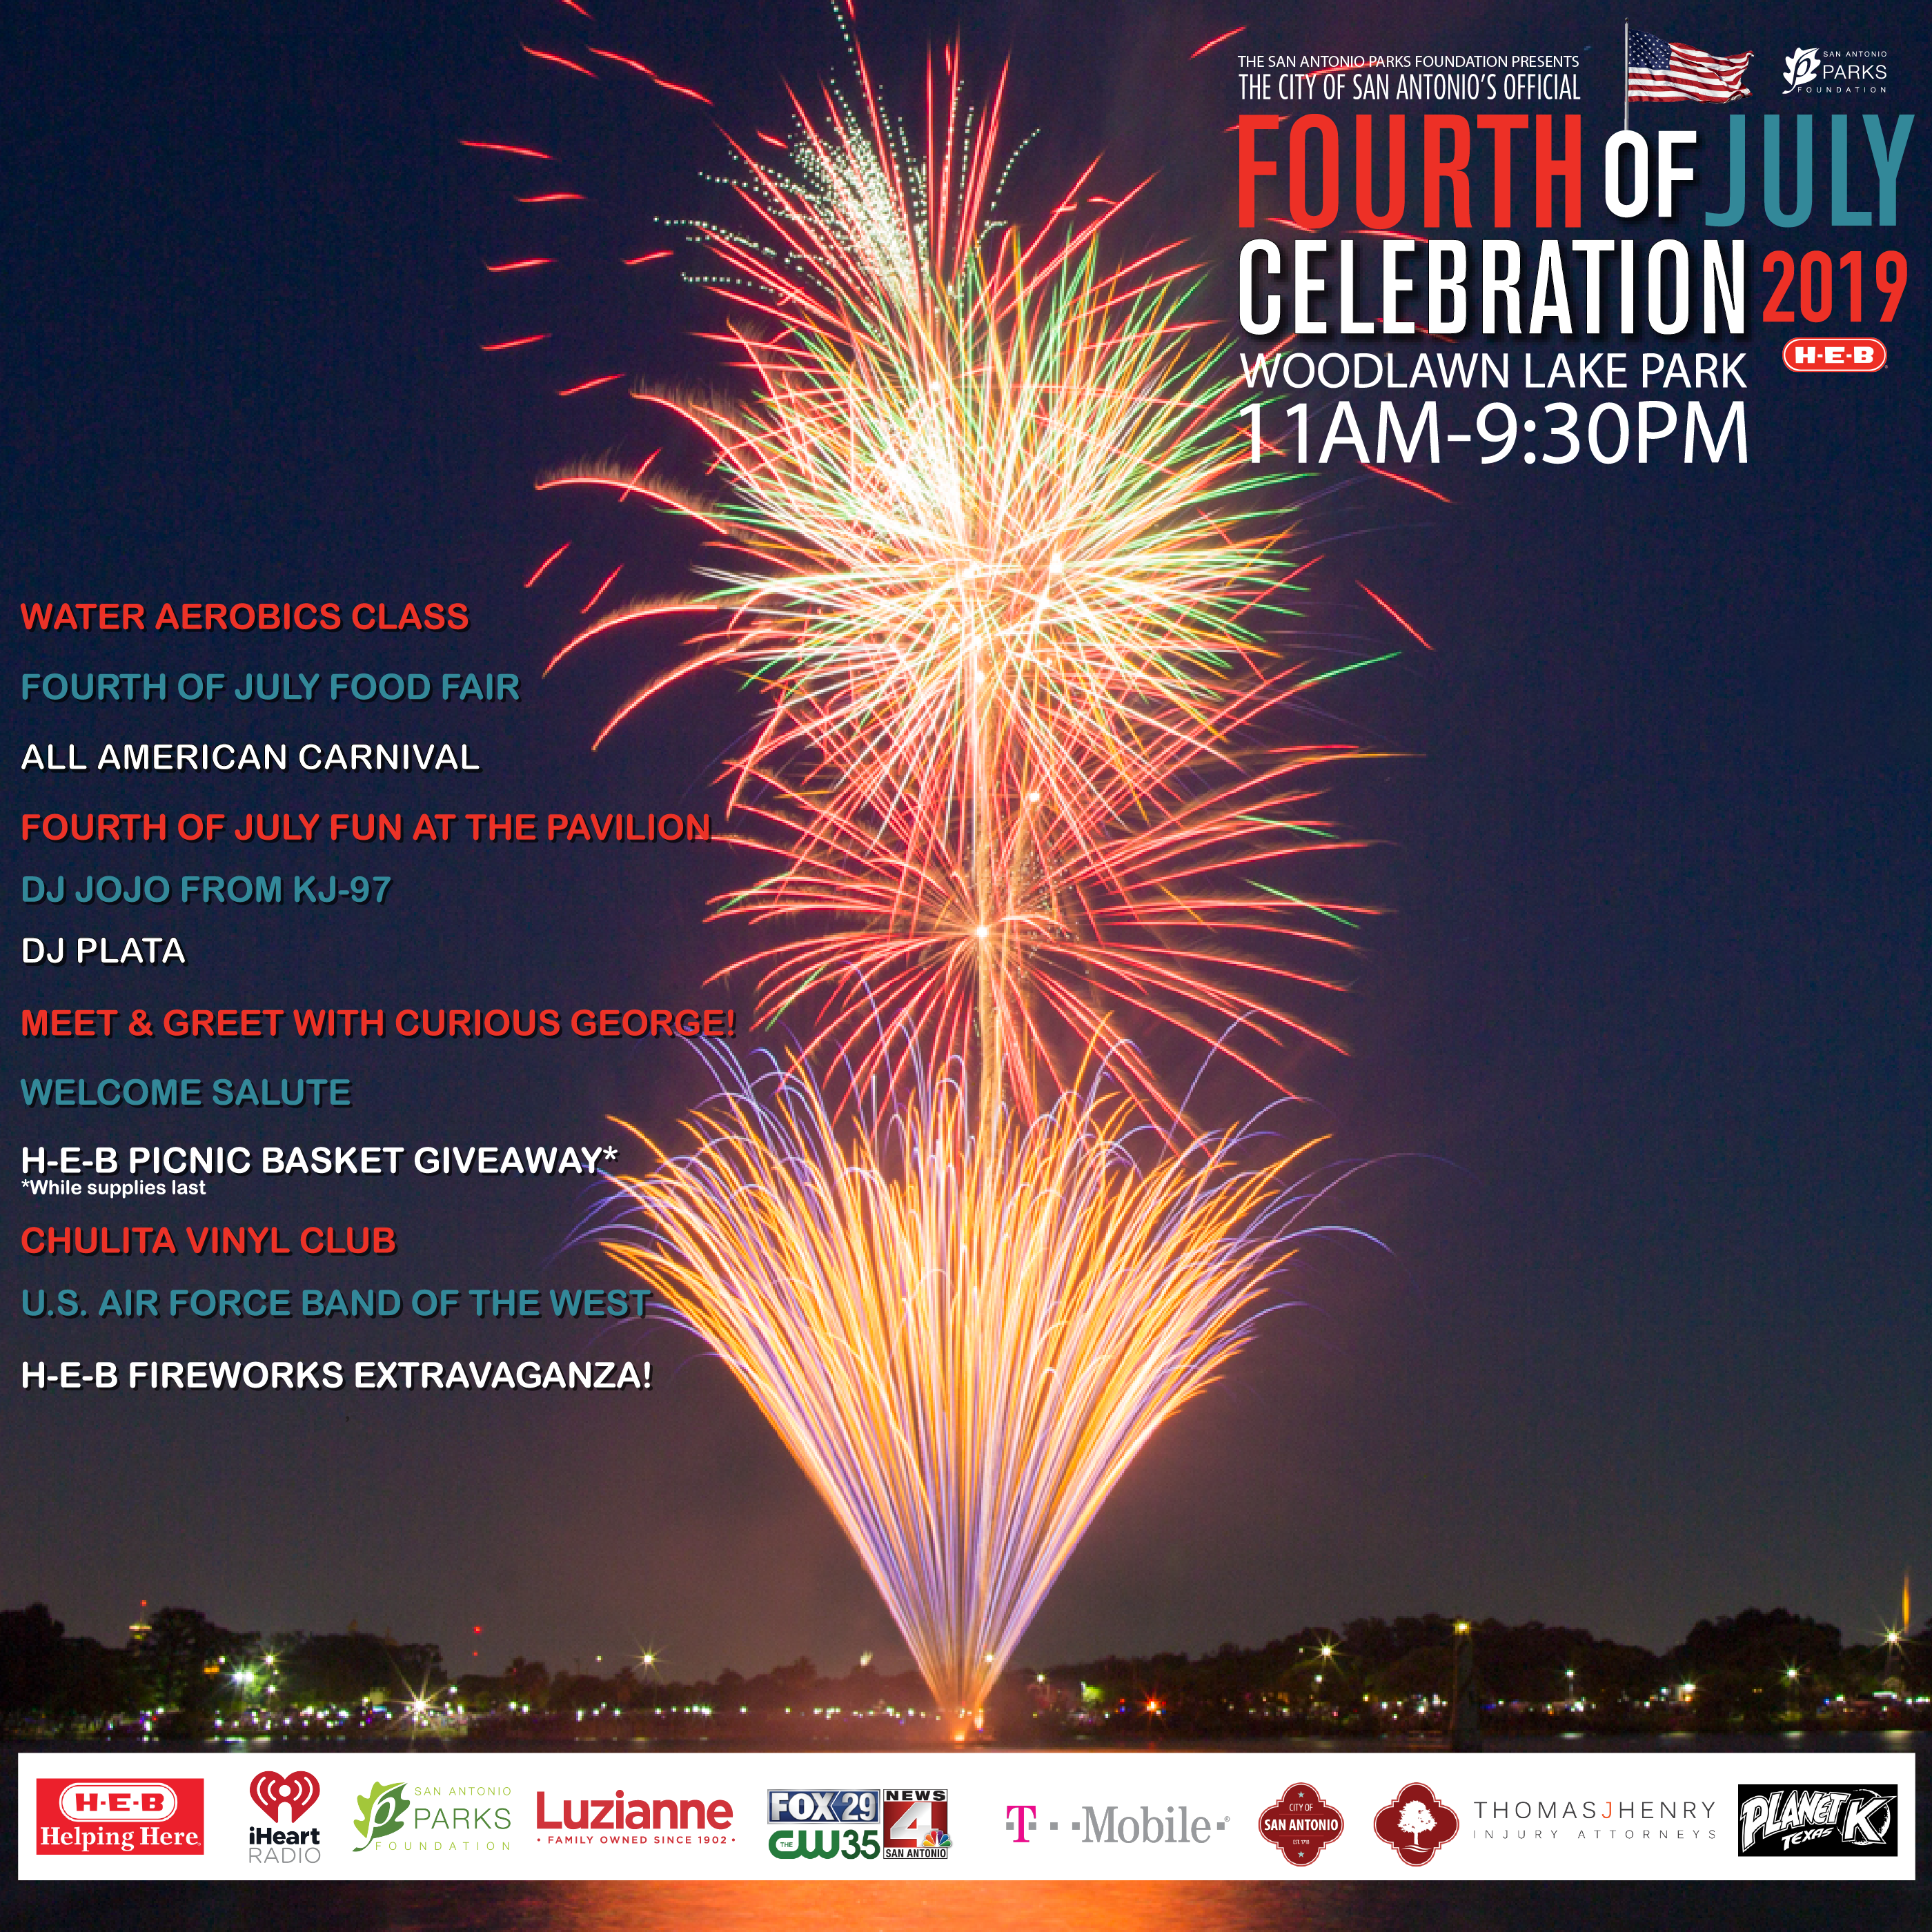 Fourth of July Celebration - San Antonio Parks Foundation